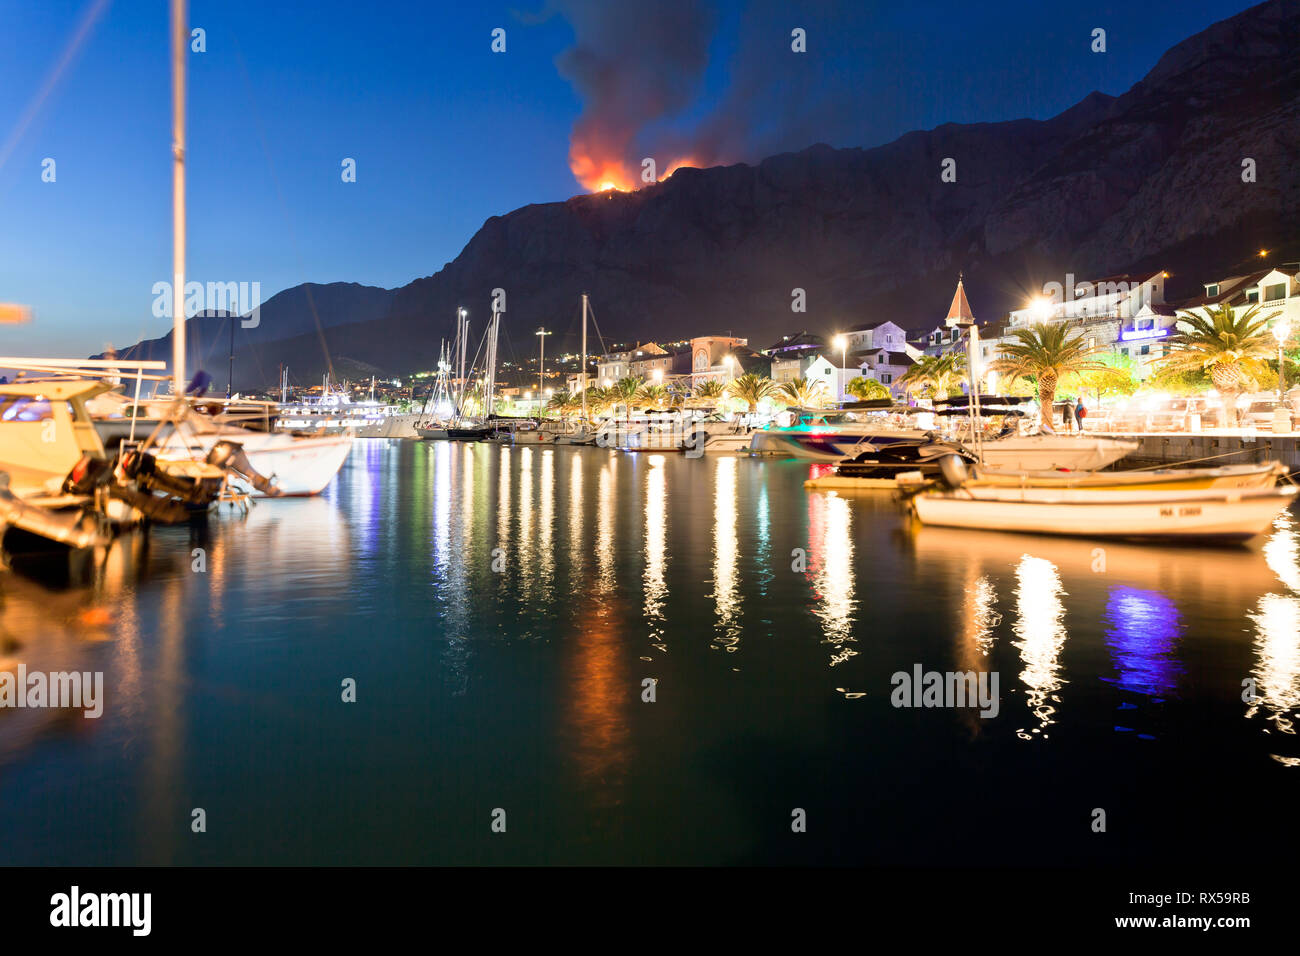 Makarska, Dalmatia, Croatia, Europe - A wildfire in the mountains of Makarska at night Stock Photo